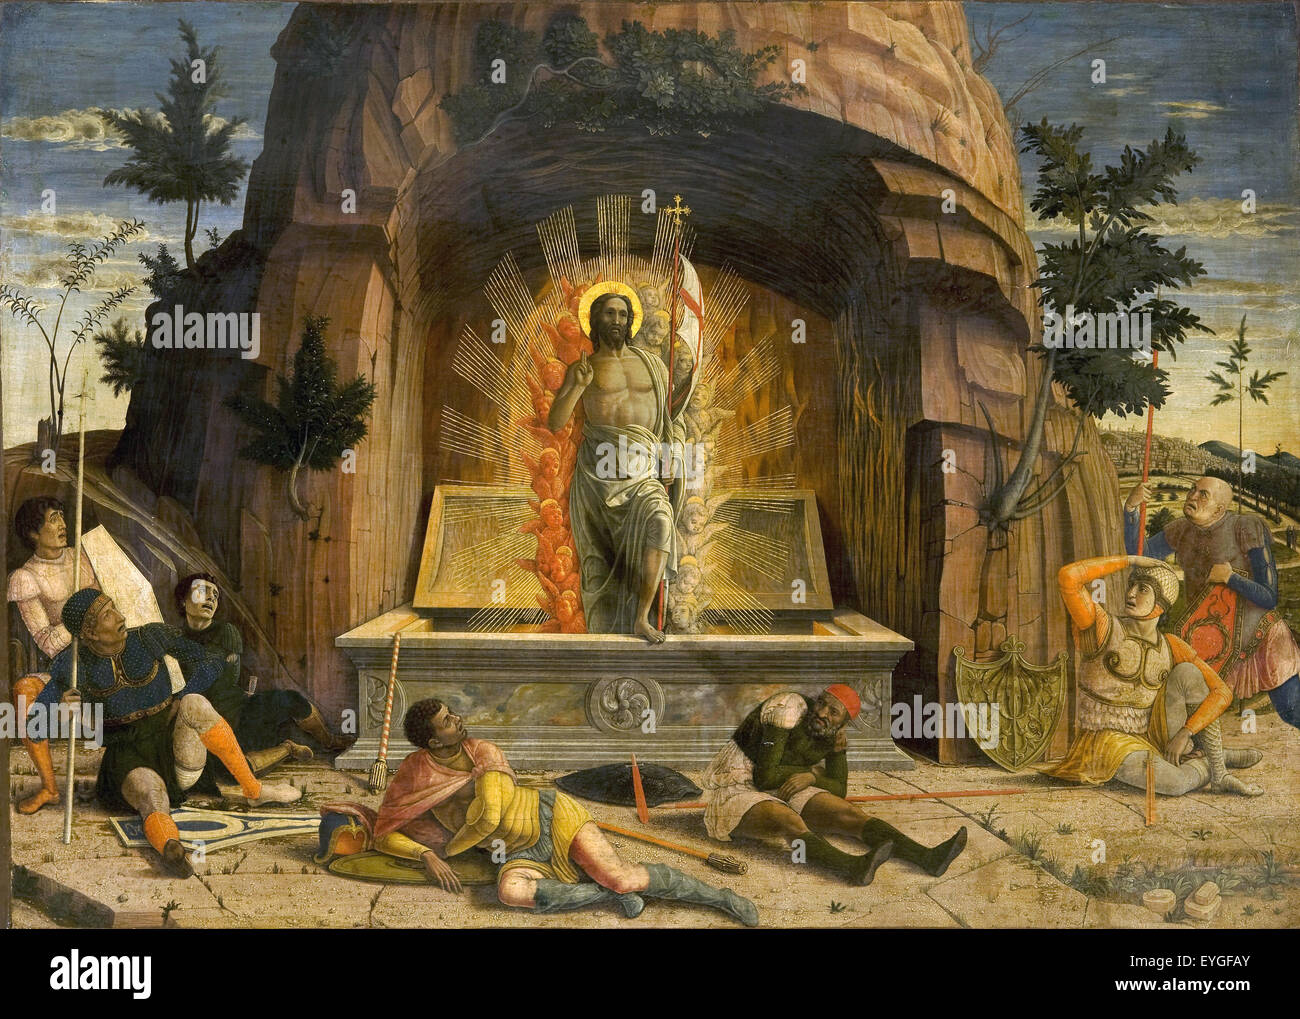 Andrea Mantegna - The Resurrection - XV th century - Italian - Stock Image